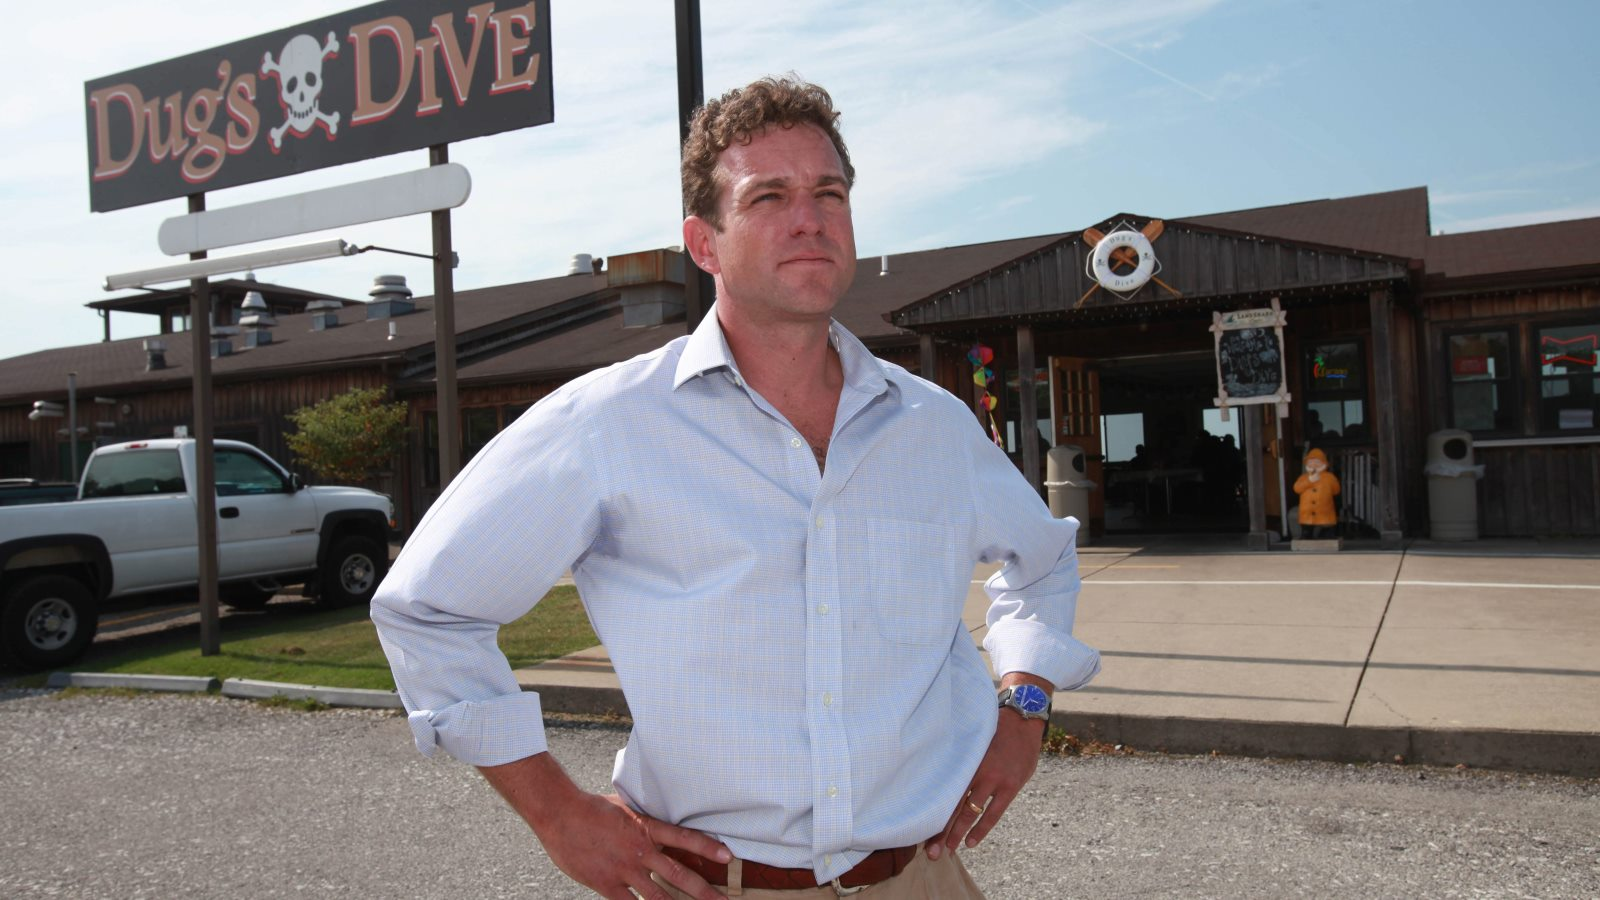 Tucker Curtin, who owns Dug's Dive, stands in front of the restaurant Sept. 24, 2010. (Sharon Cantillon/Buffalo News)